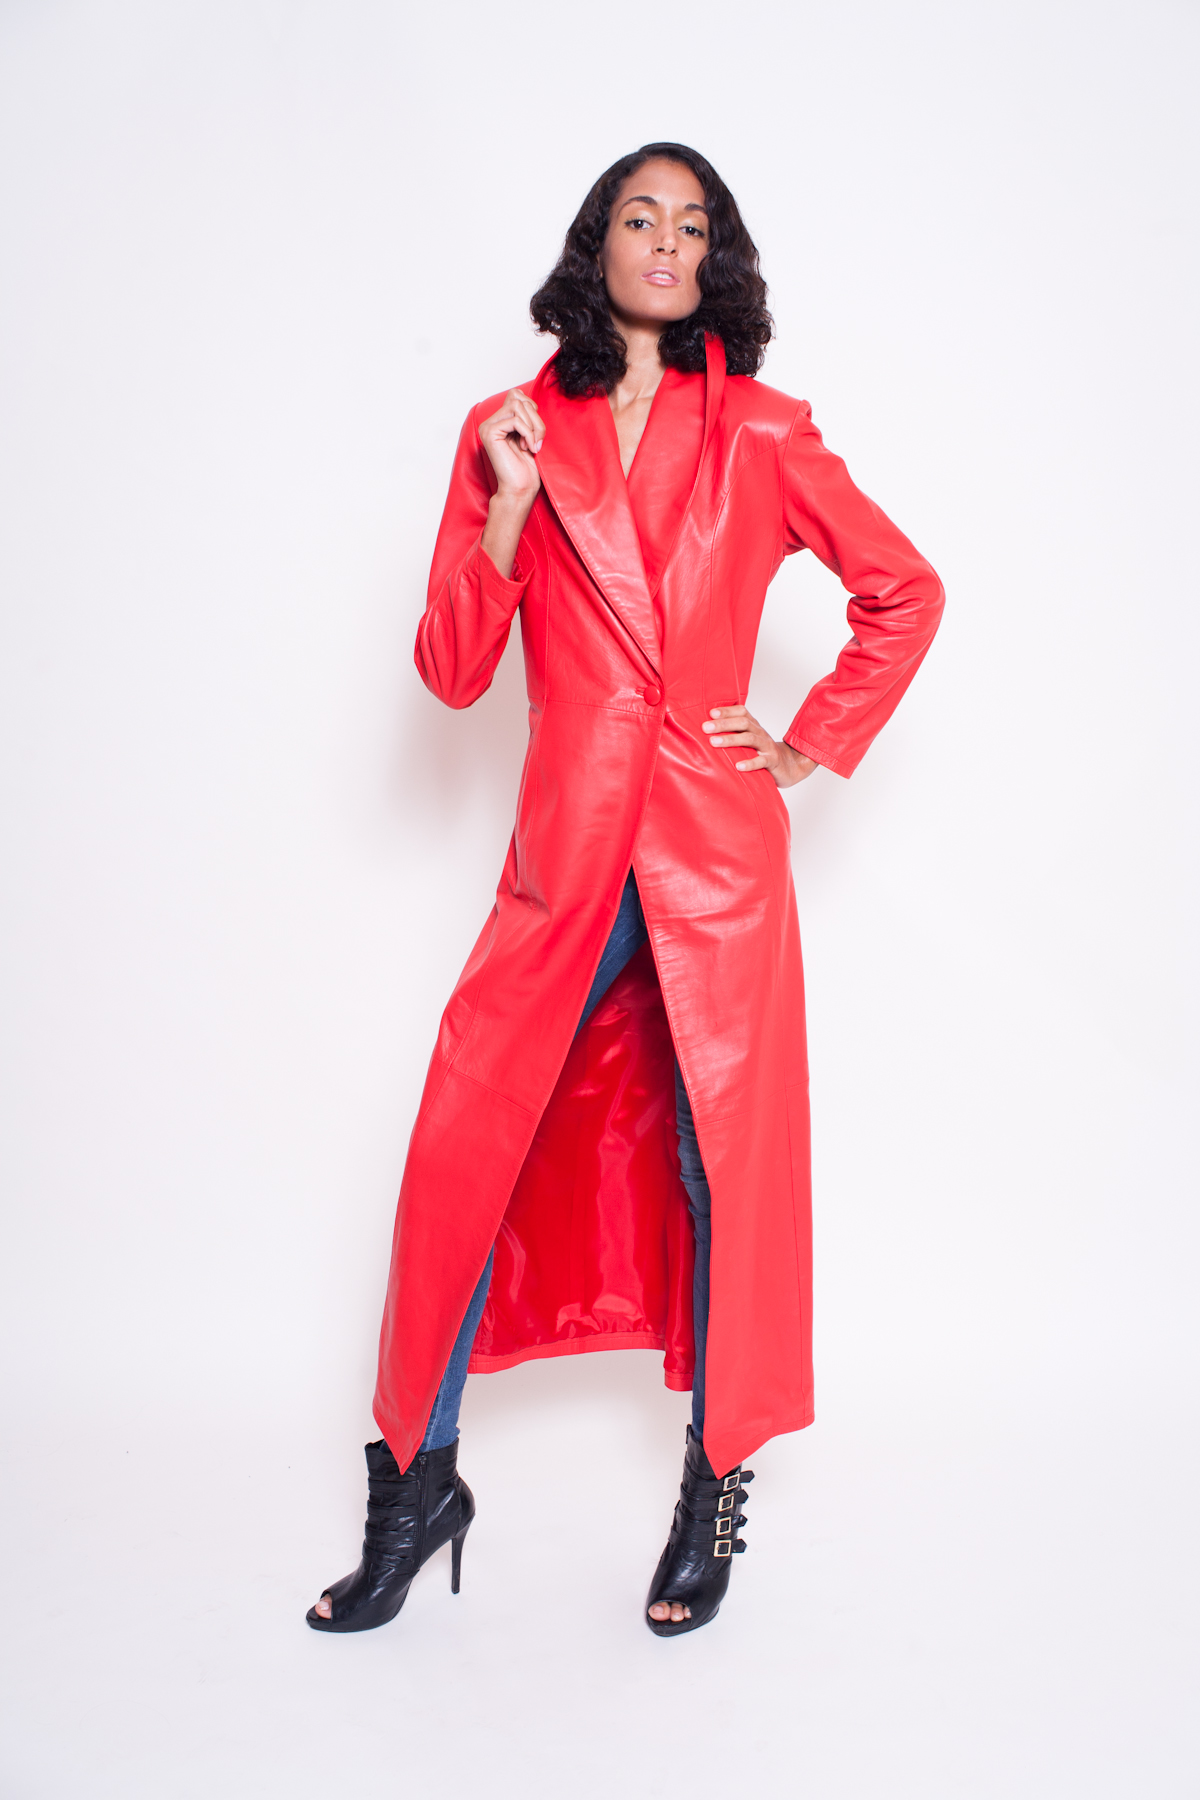 Women's Lambskin Leather Coat -$400 (Leather Clothing) Colors: Red Black. Sizes:  X-Small Small Medium Large X-large 2XL(+$30) 3XL(+$30)     This women's lambskin leather coat is the ultimate in a fashion statement from New York. Wear it